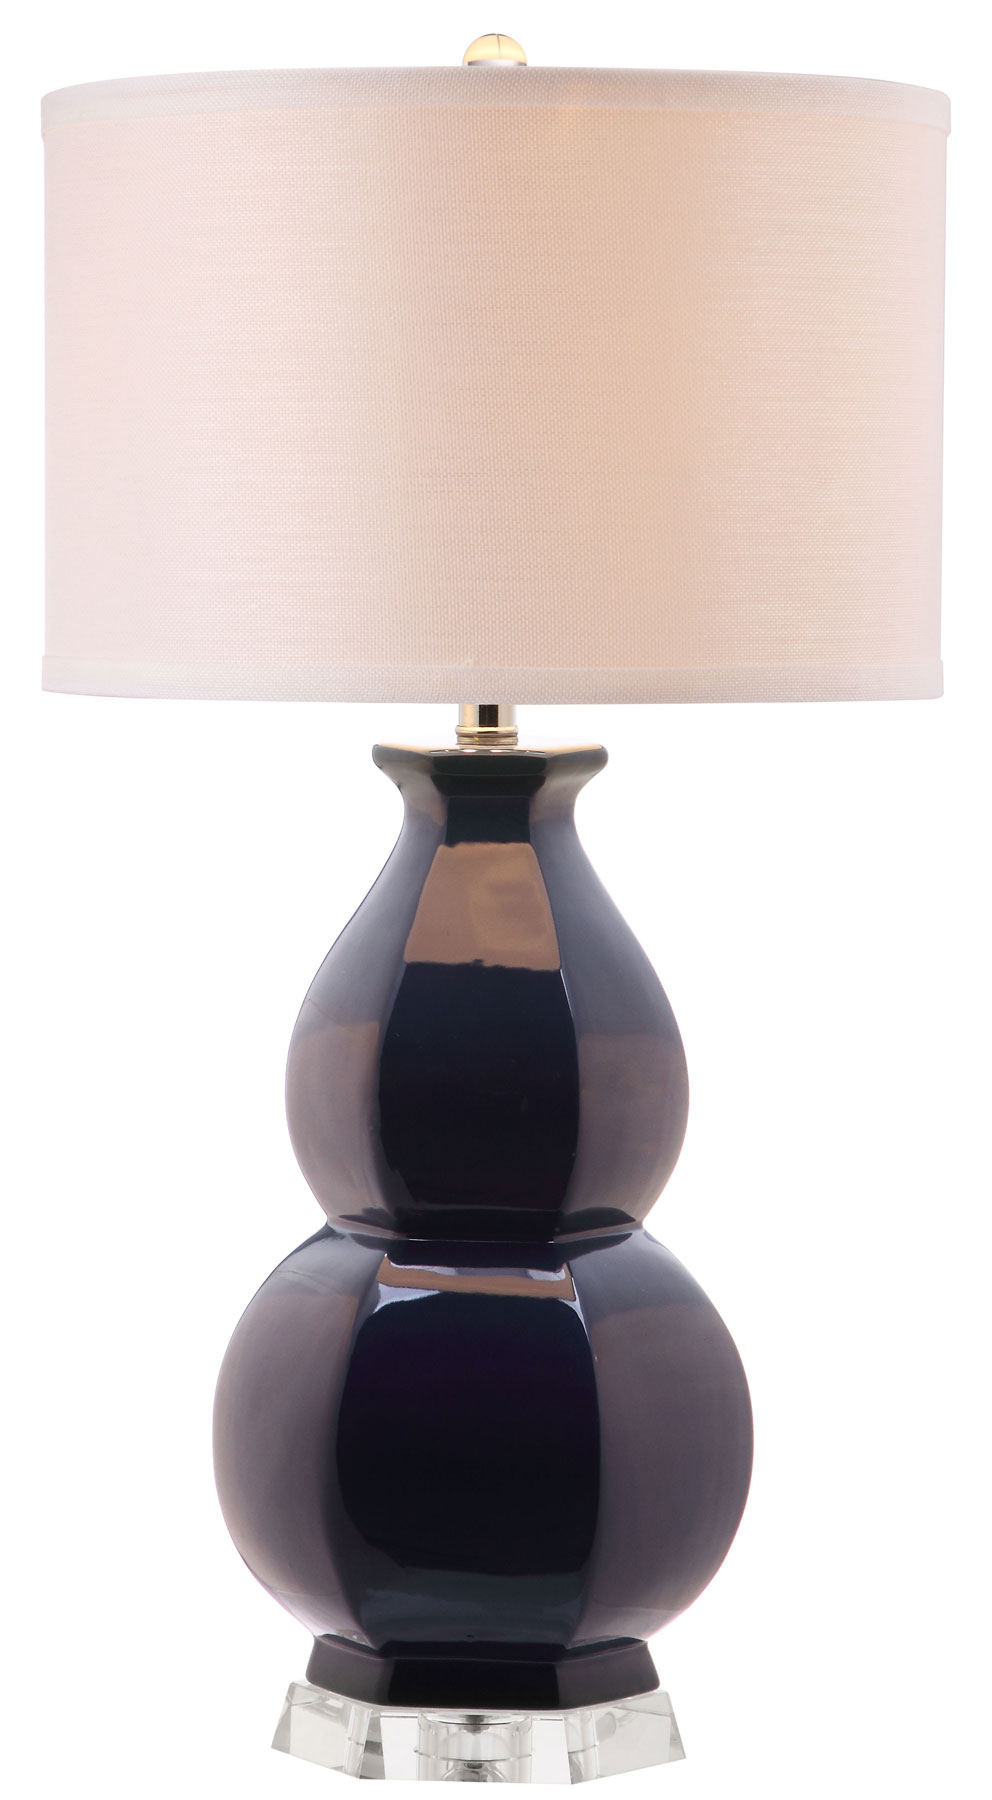 Lit4245b Table Lamps Lighting By Safavieh